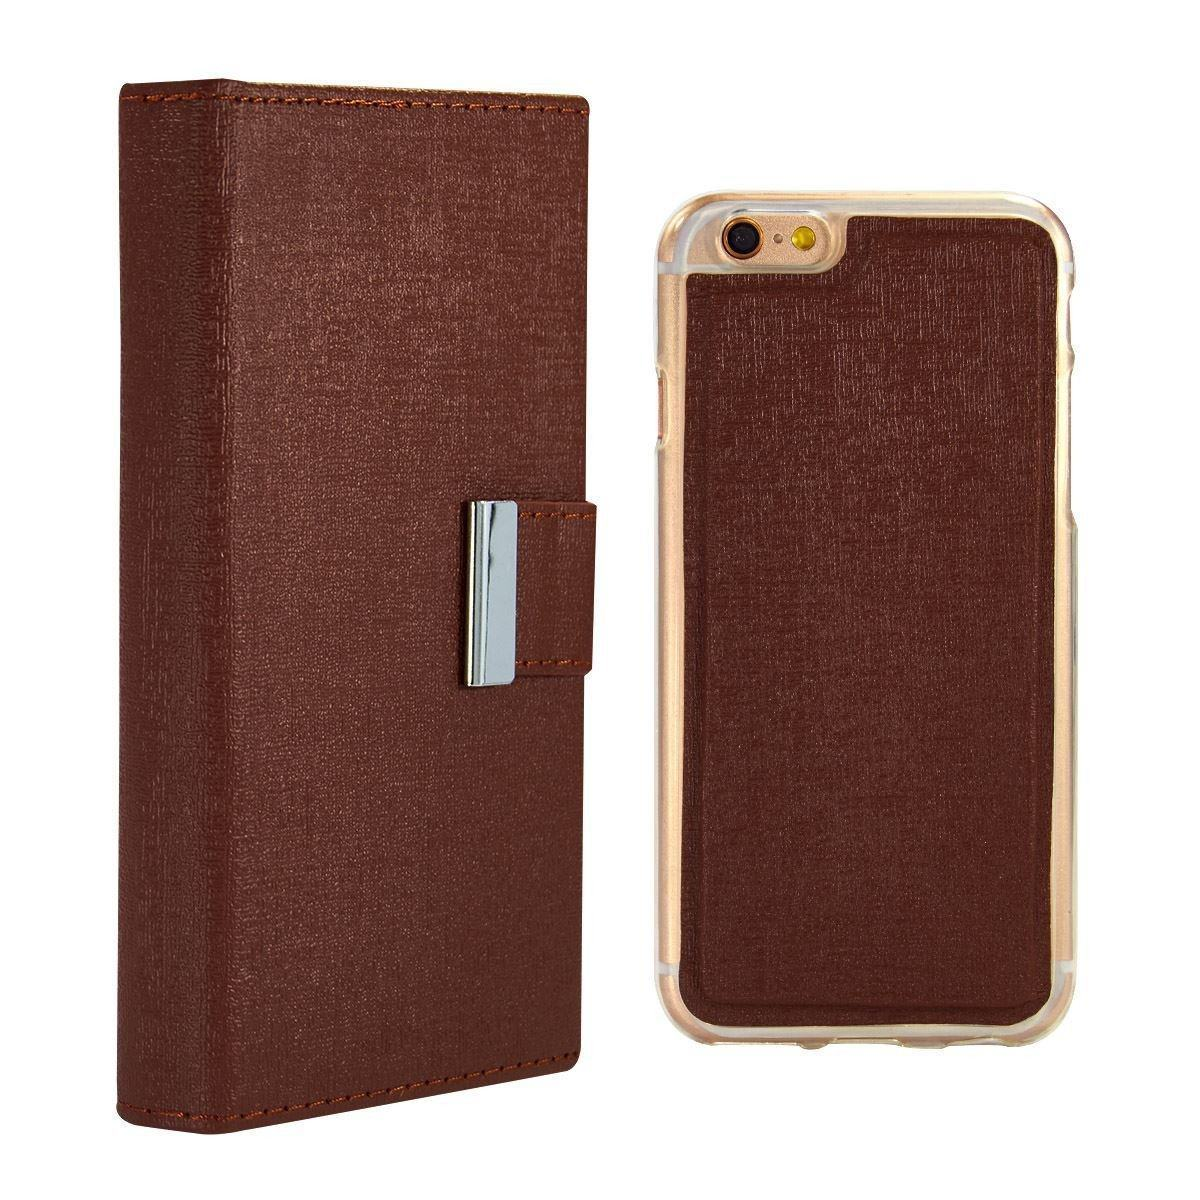 Real Wallet Case for iPhone 7 Plus /8 Plus - Brown